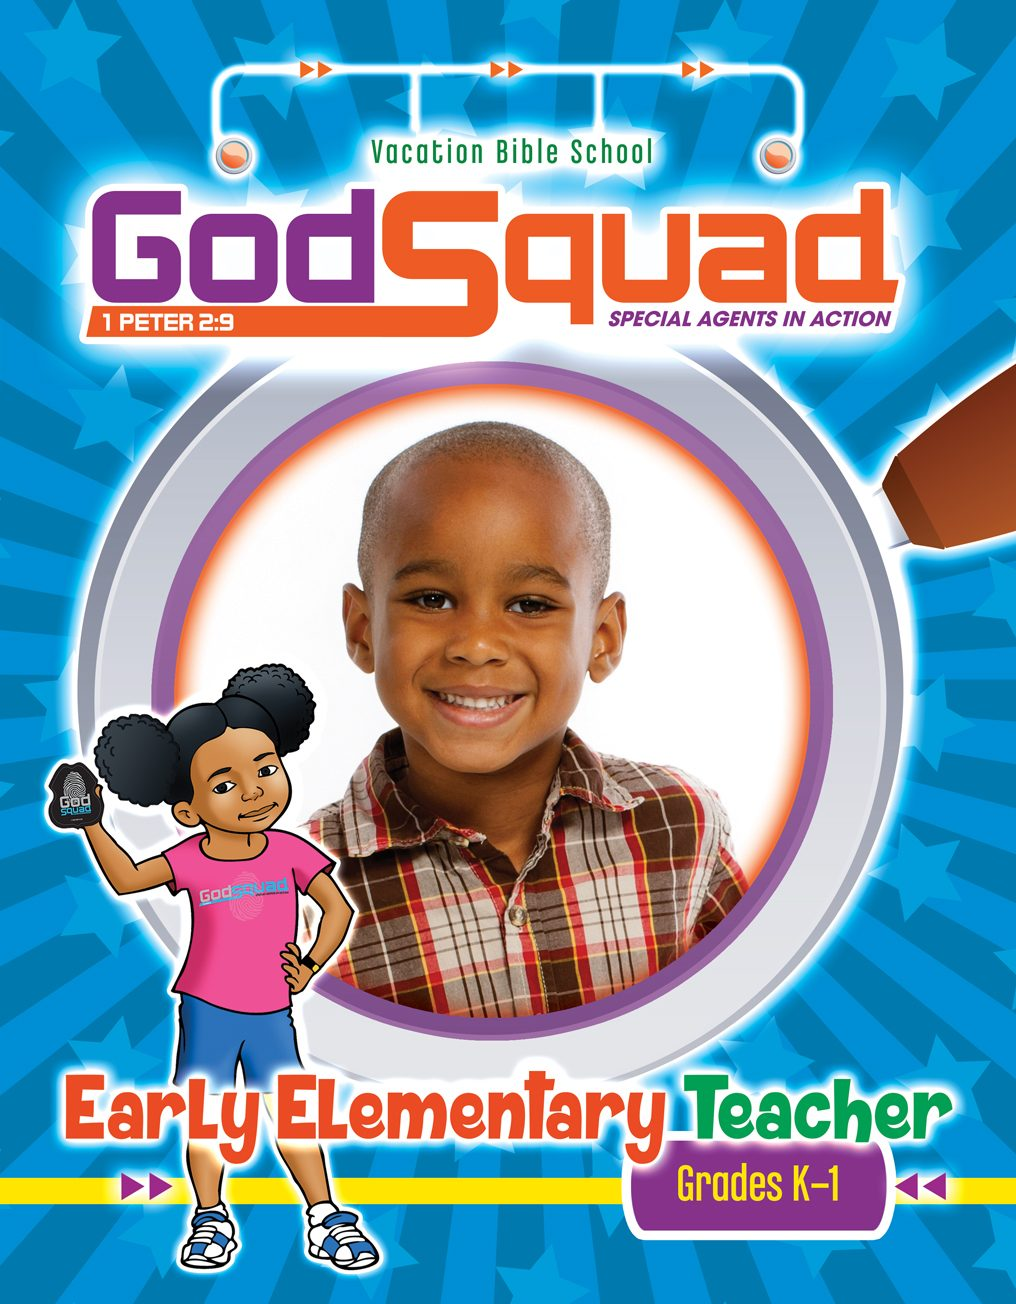 VBS GodSquad Early Elementary Teacher 2018